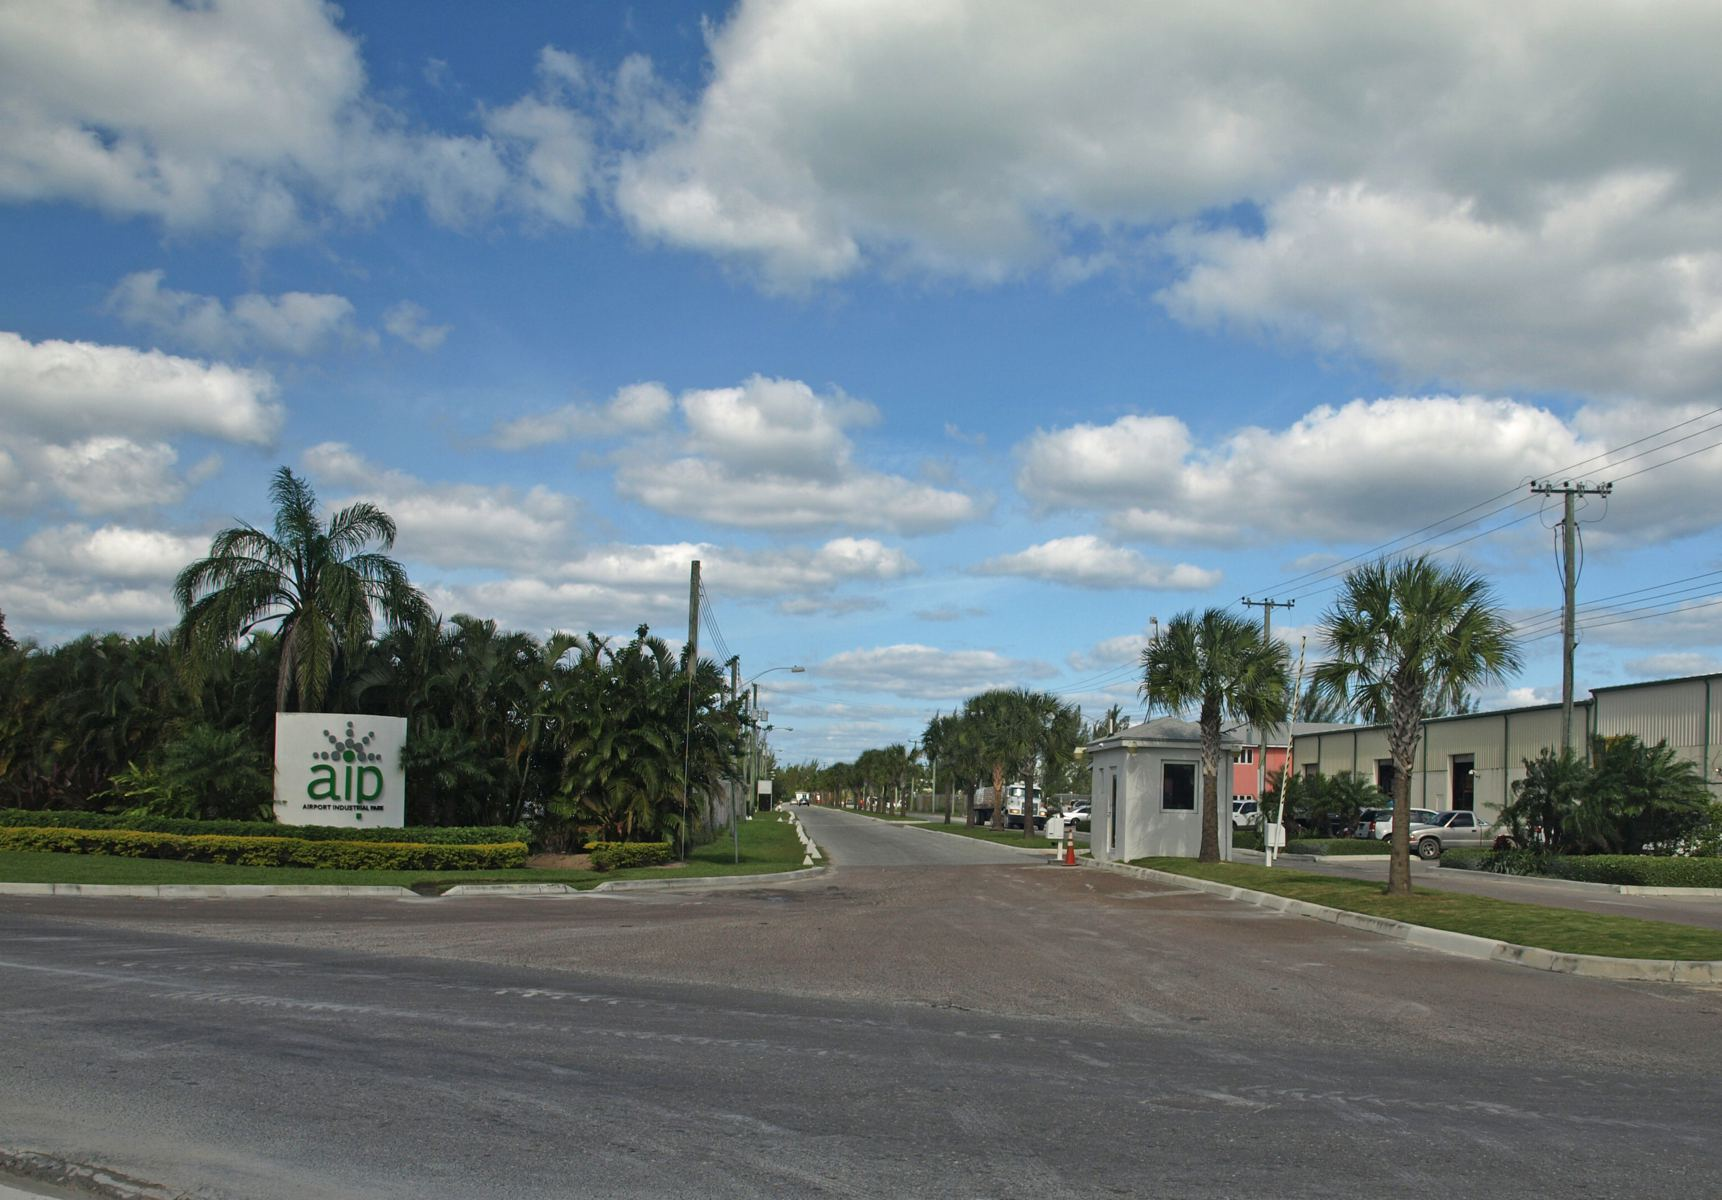 Commercial for Sale at Airport Industrial Park Lot Airport Industrial Park, Nassau And Paradise Island Bahamas